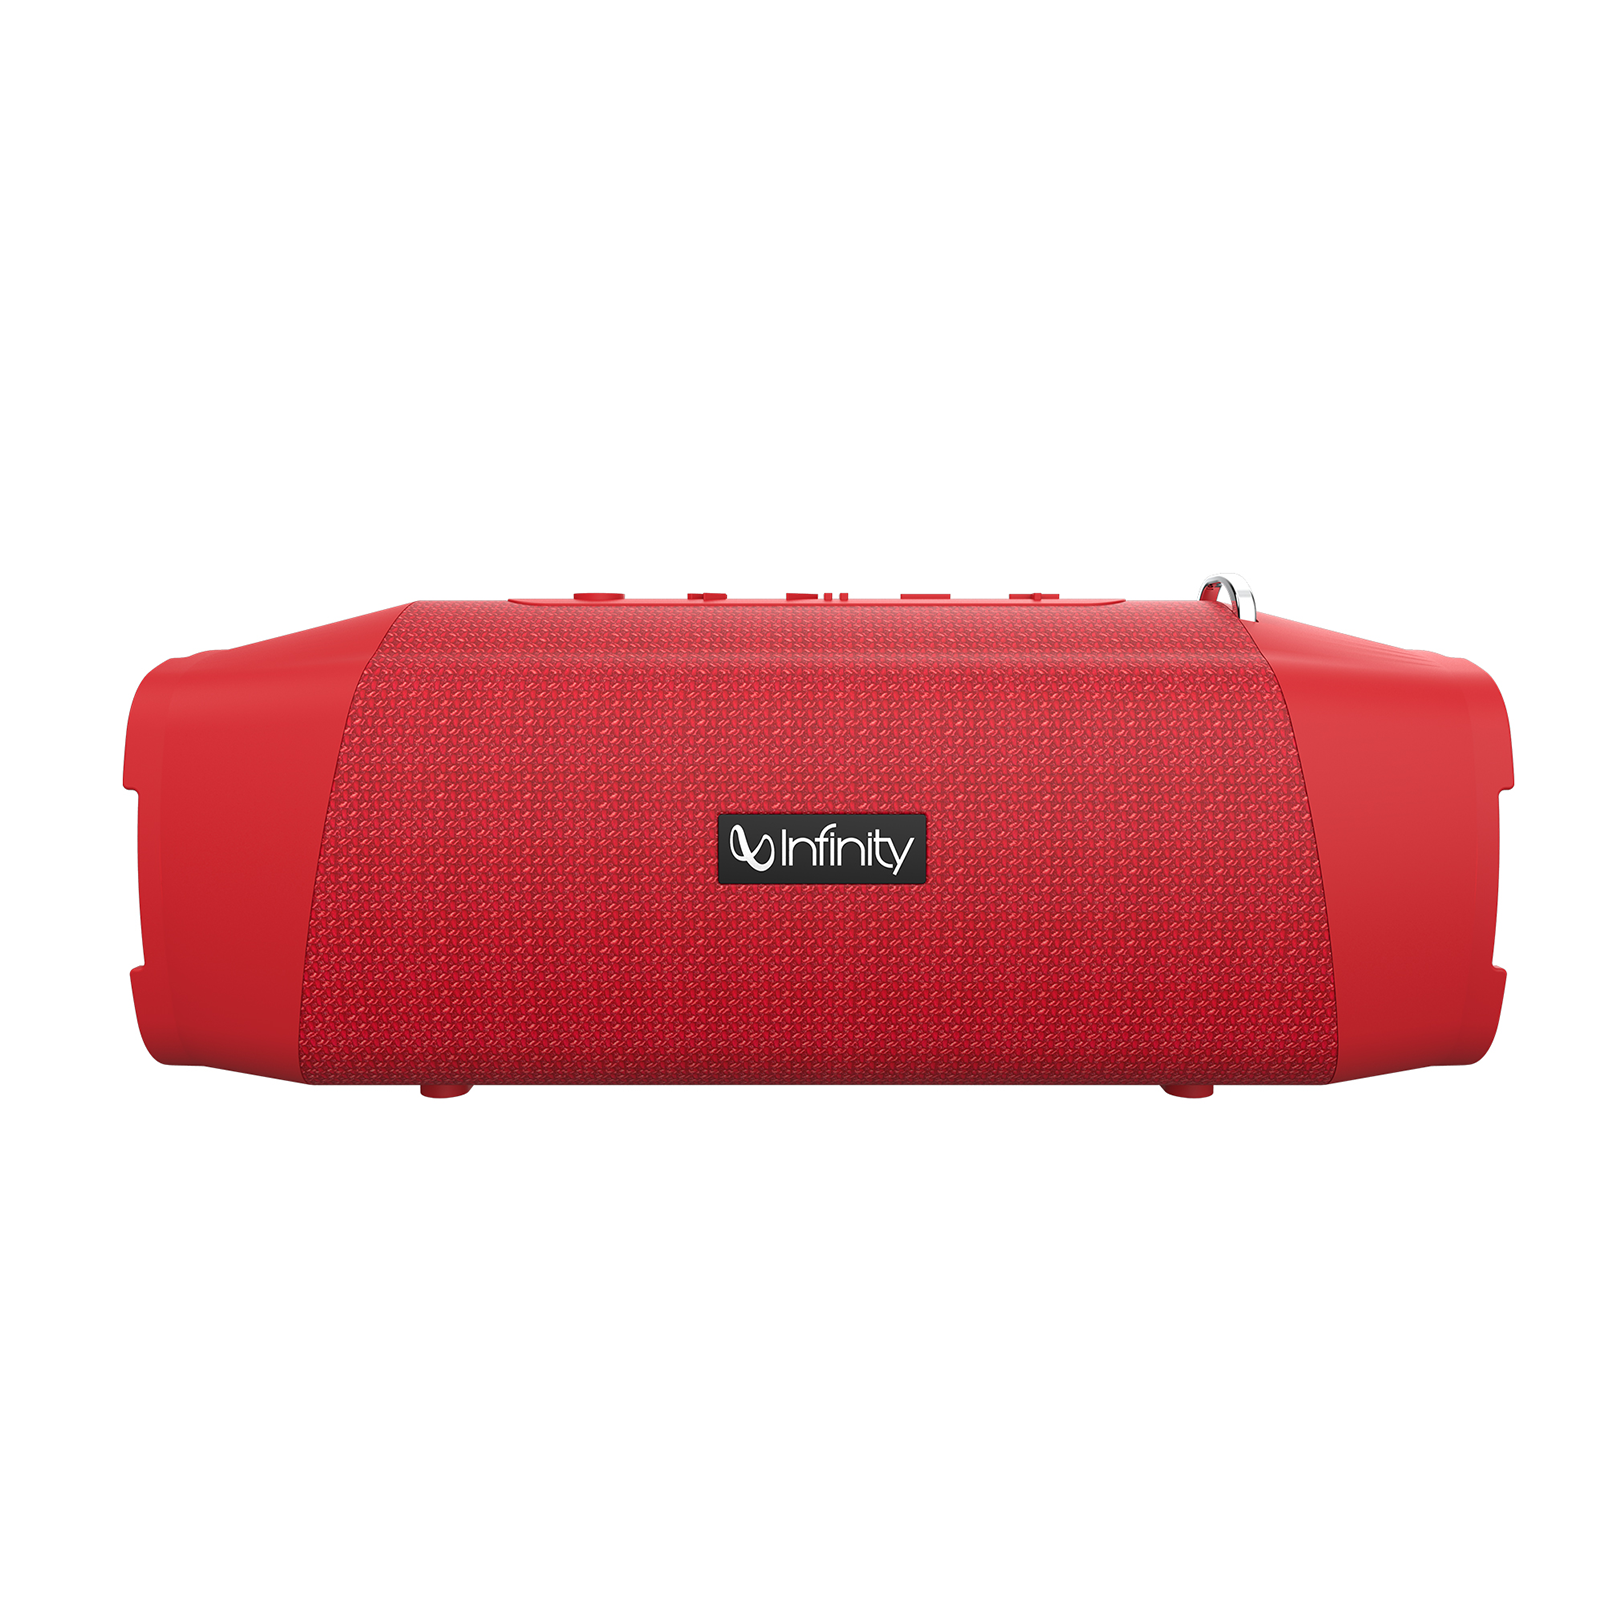 INFINITY FUZE 700 - Red - Portable Wireless Speakers - Hero